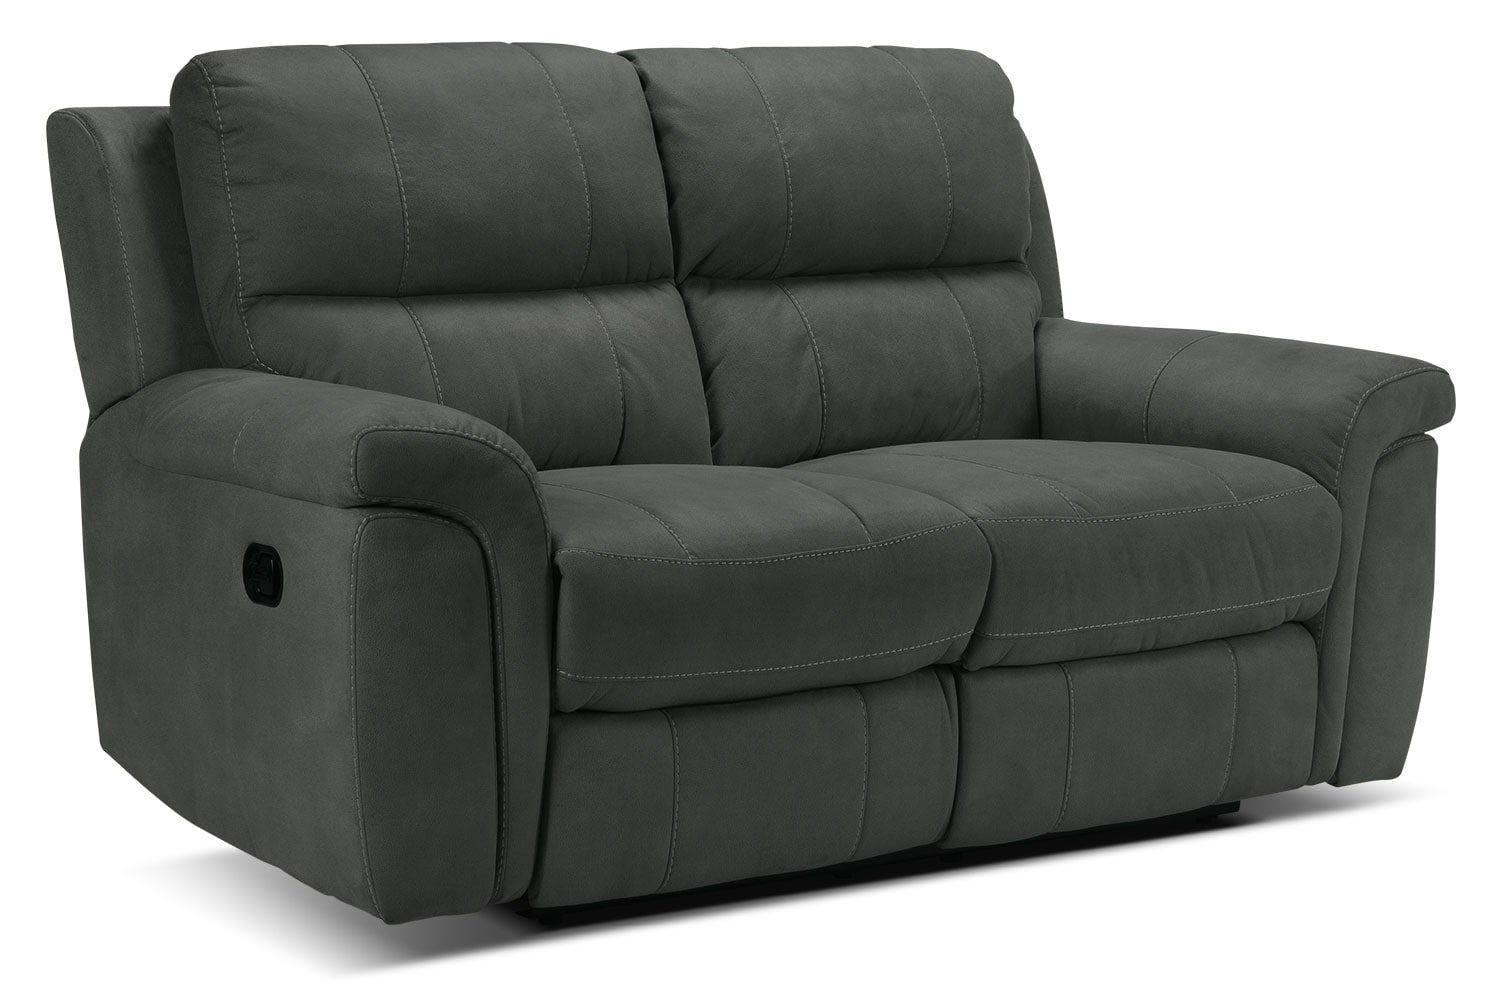 Living Room Furniture - Roarke Reclining Loveseat - Charcoal